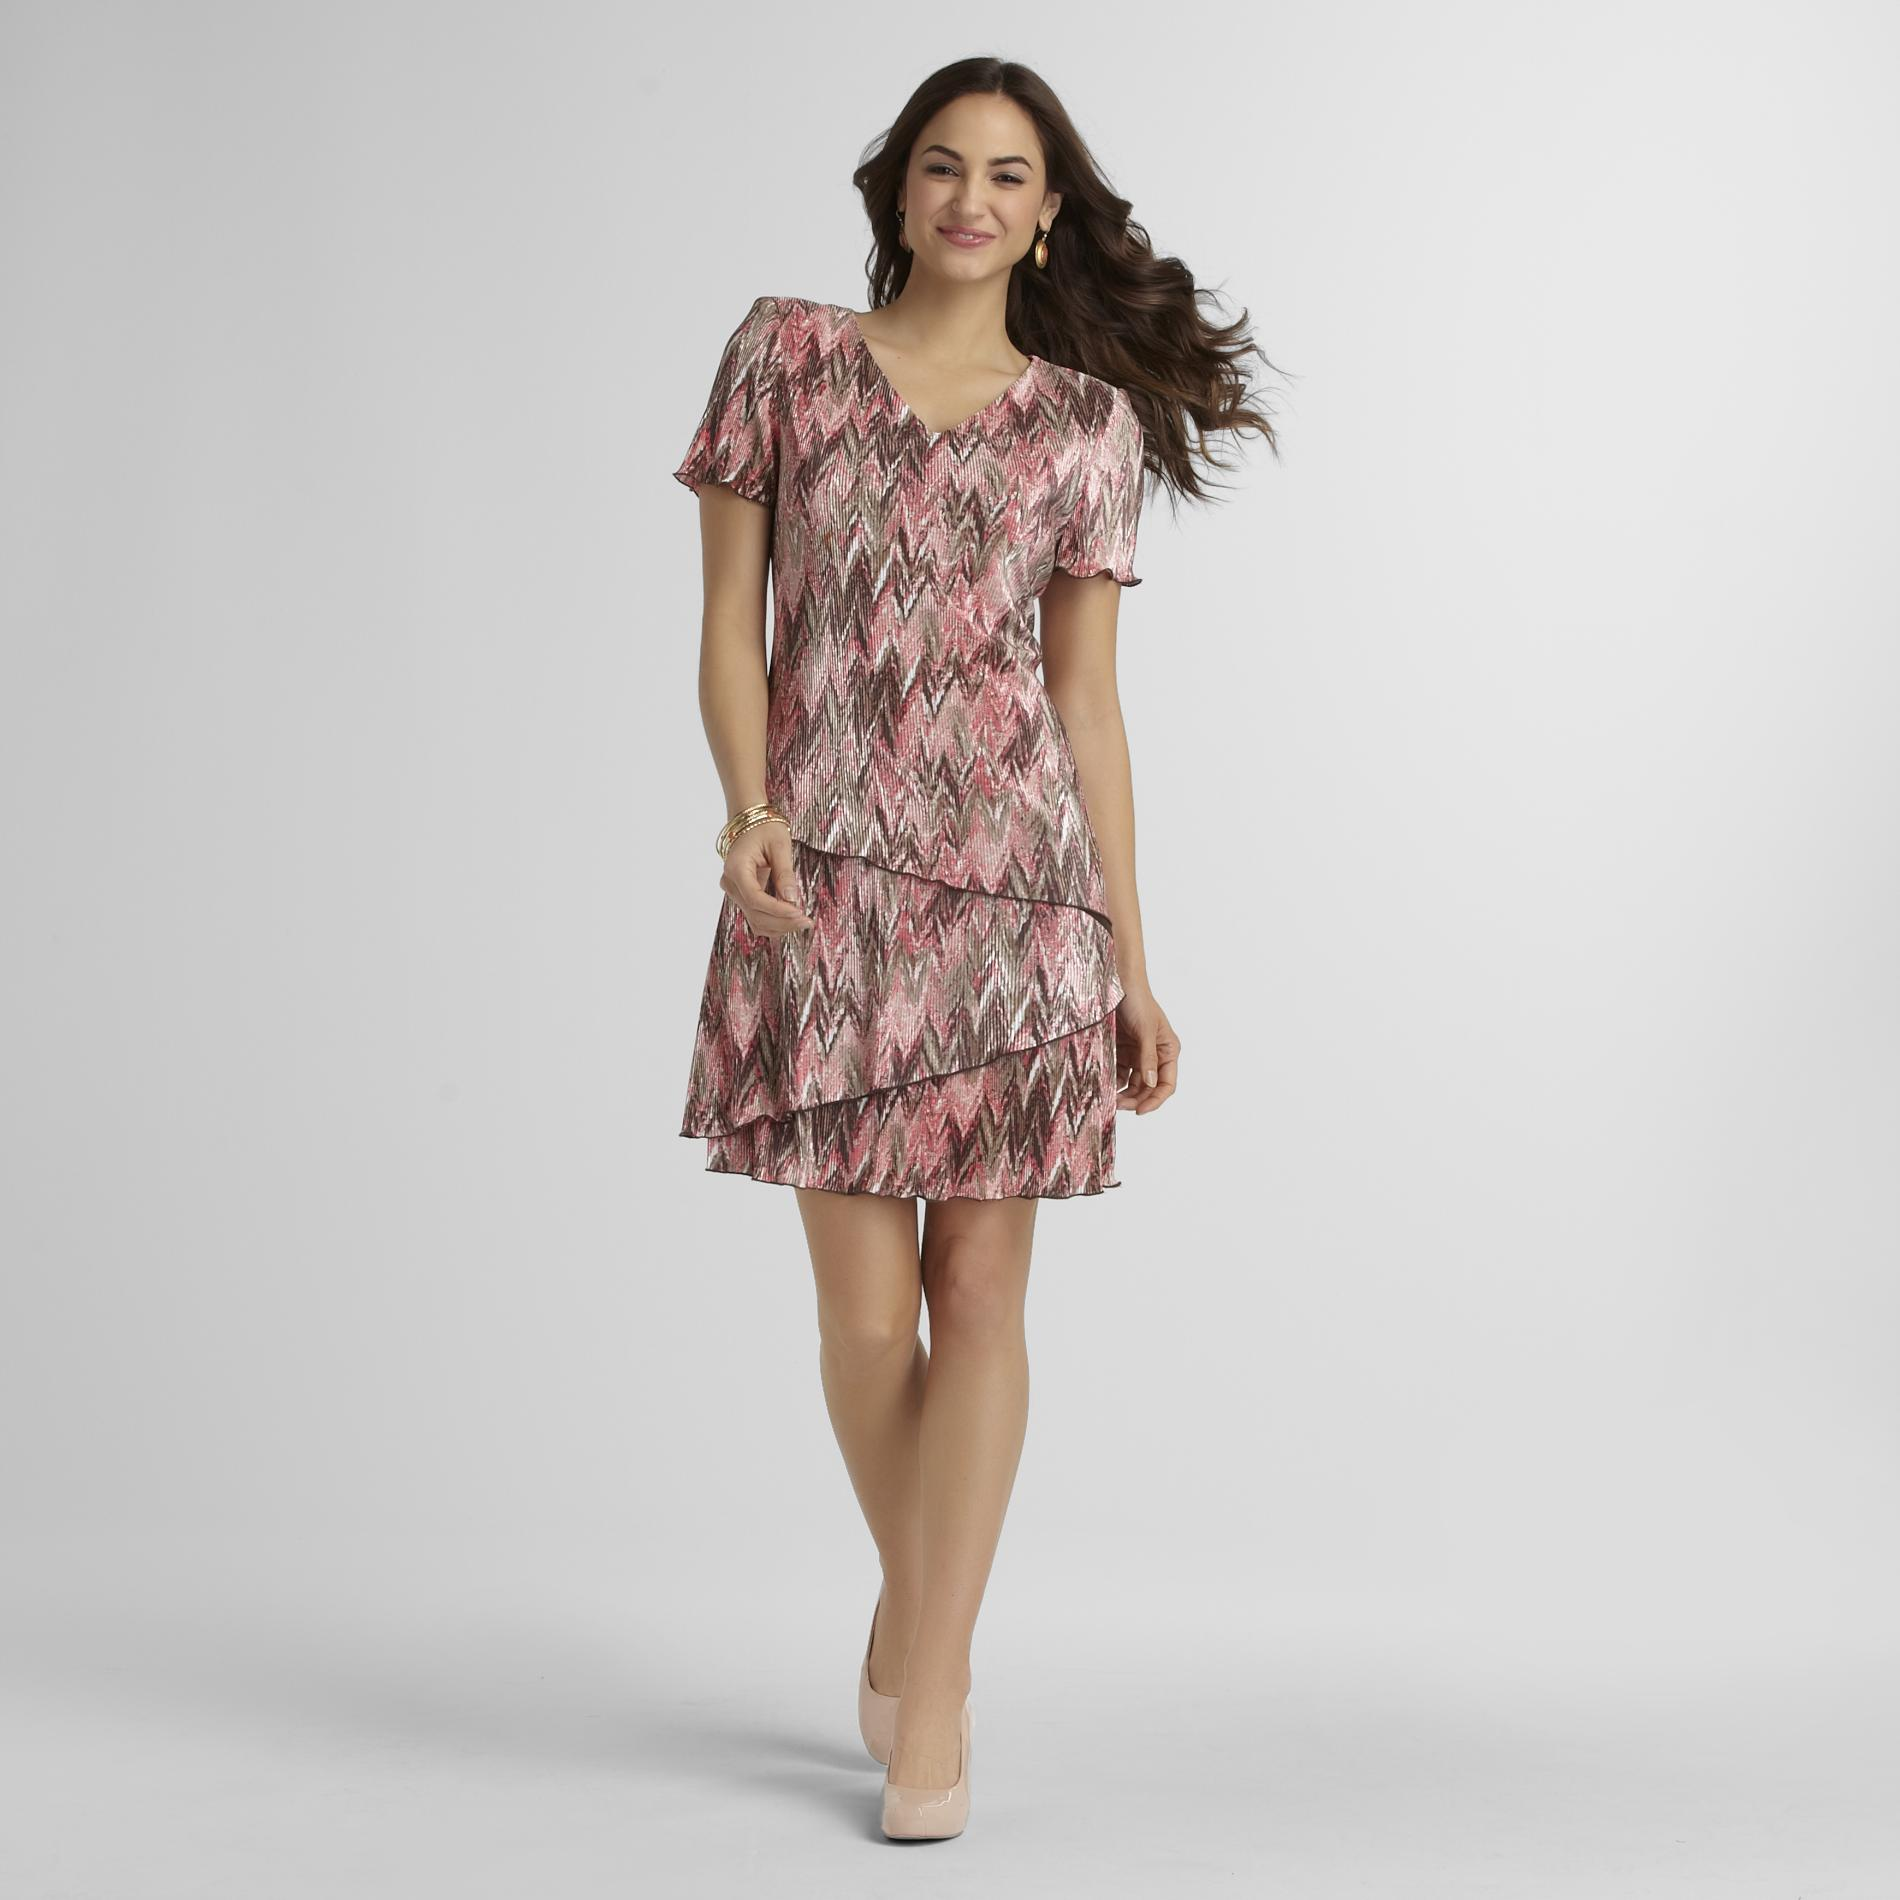 Women's Pleated Party Dress - Tribal at Sears.com